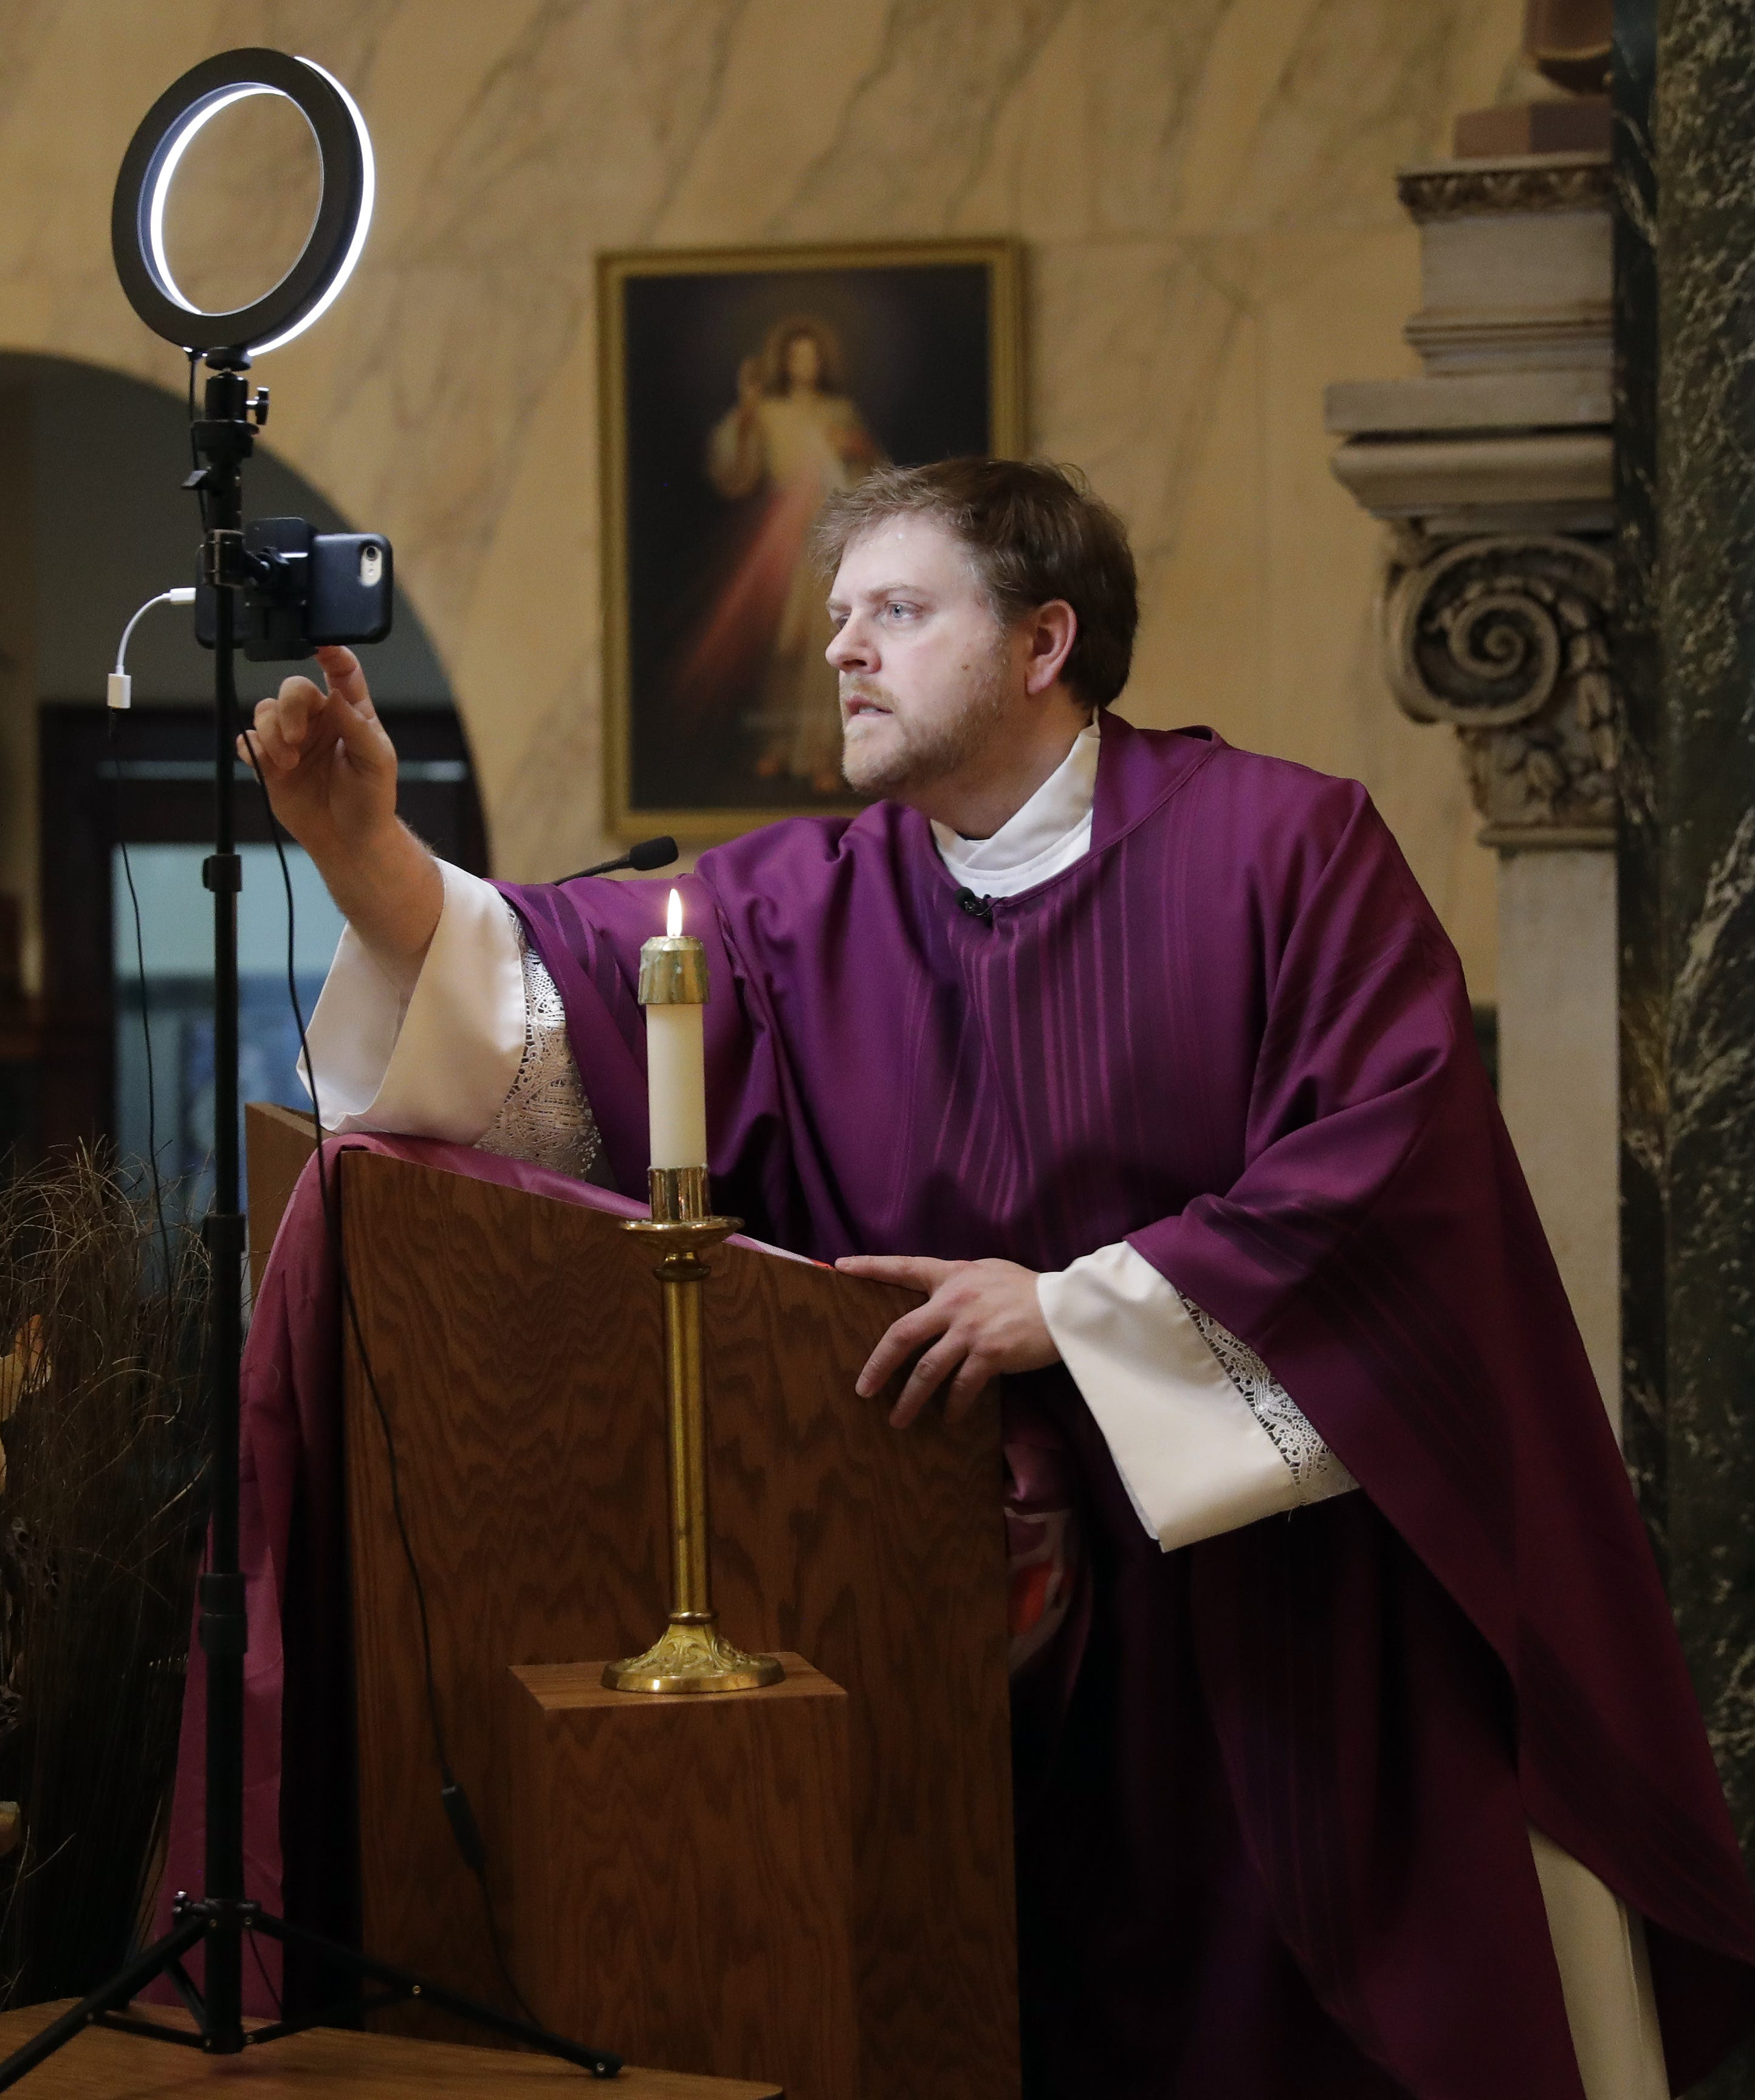 """The Rev. Brian Wideman presses """"record"""" on his phone before giving his homily in front of an empty St. Paul Catholic Church on March 21, 2020, in Wrightstown, Wis. Wideman began recording masses for St. Clare Parish after church services were suspended to the public because of the coronavirus pandemic."""